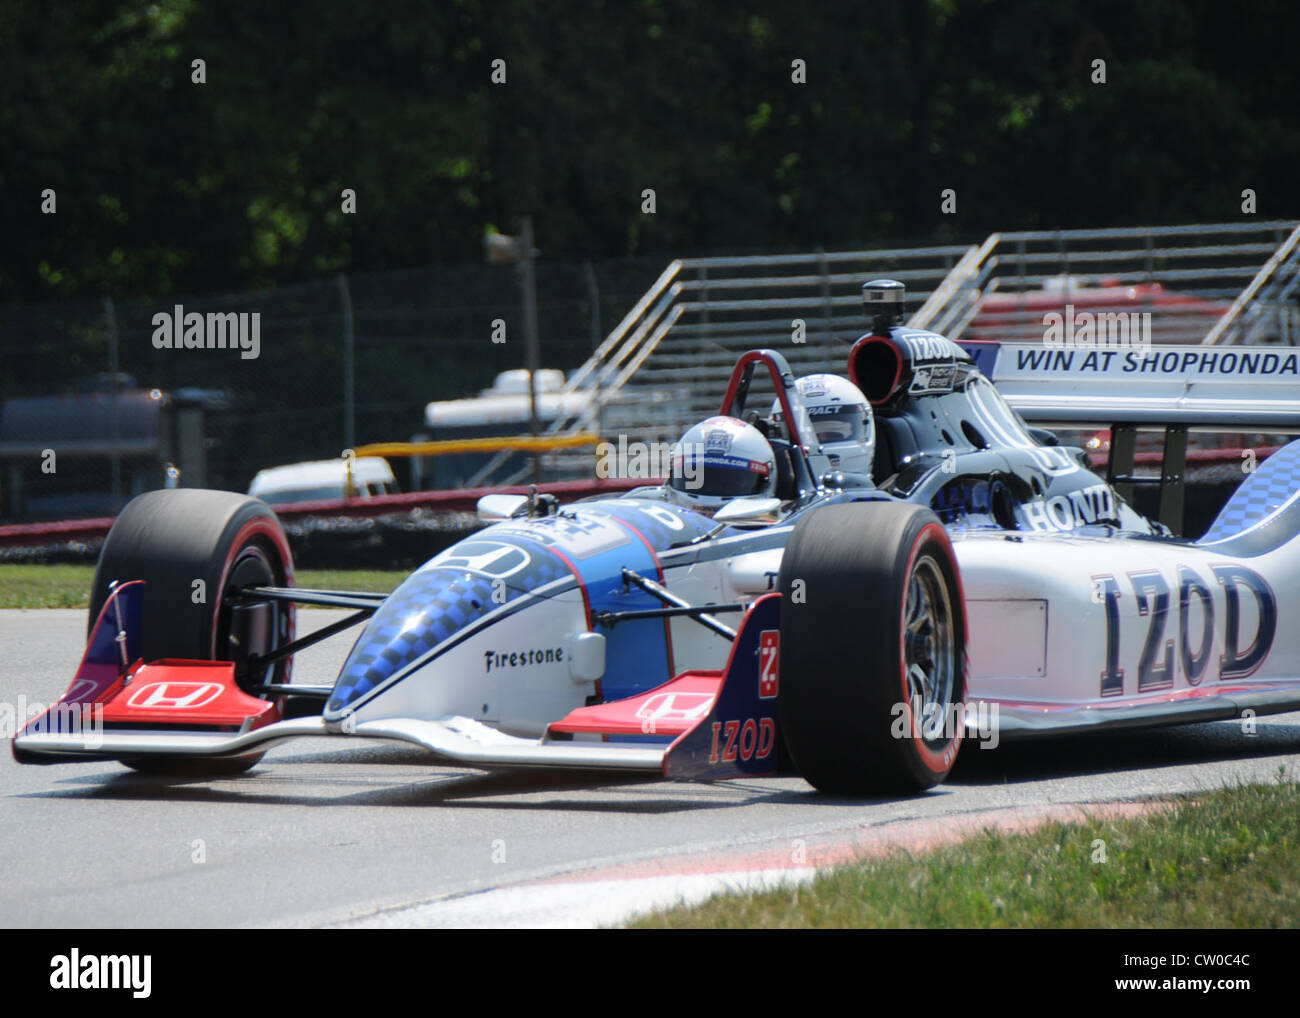 Andretti Stock Photos & Andretti Stock Images - Alamy